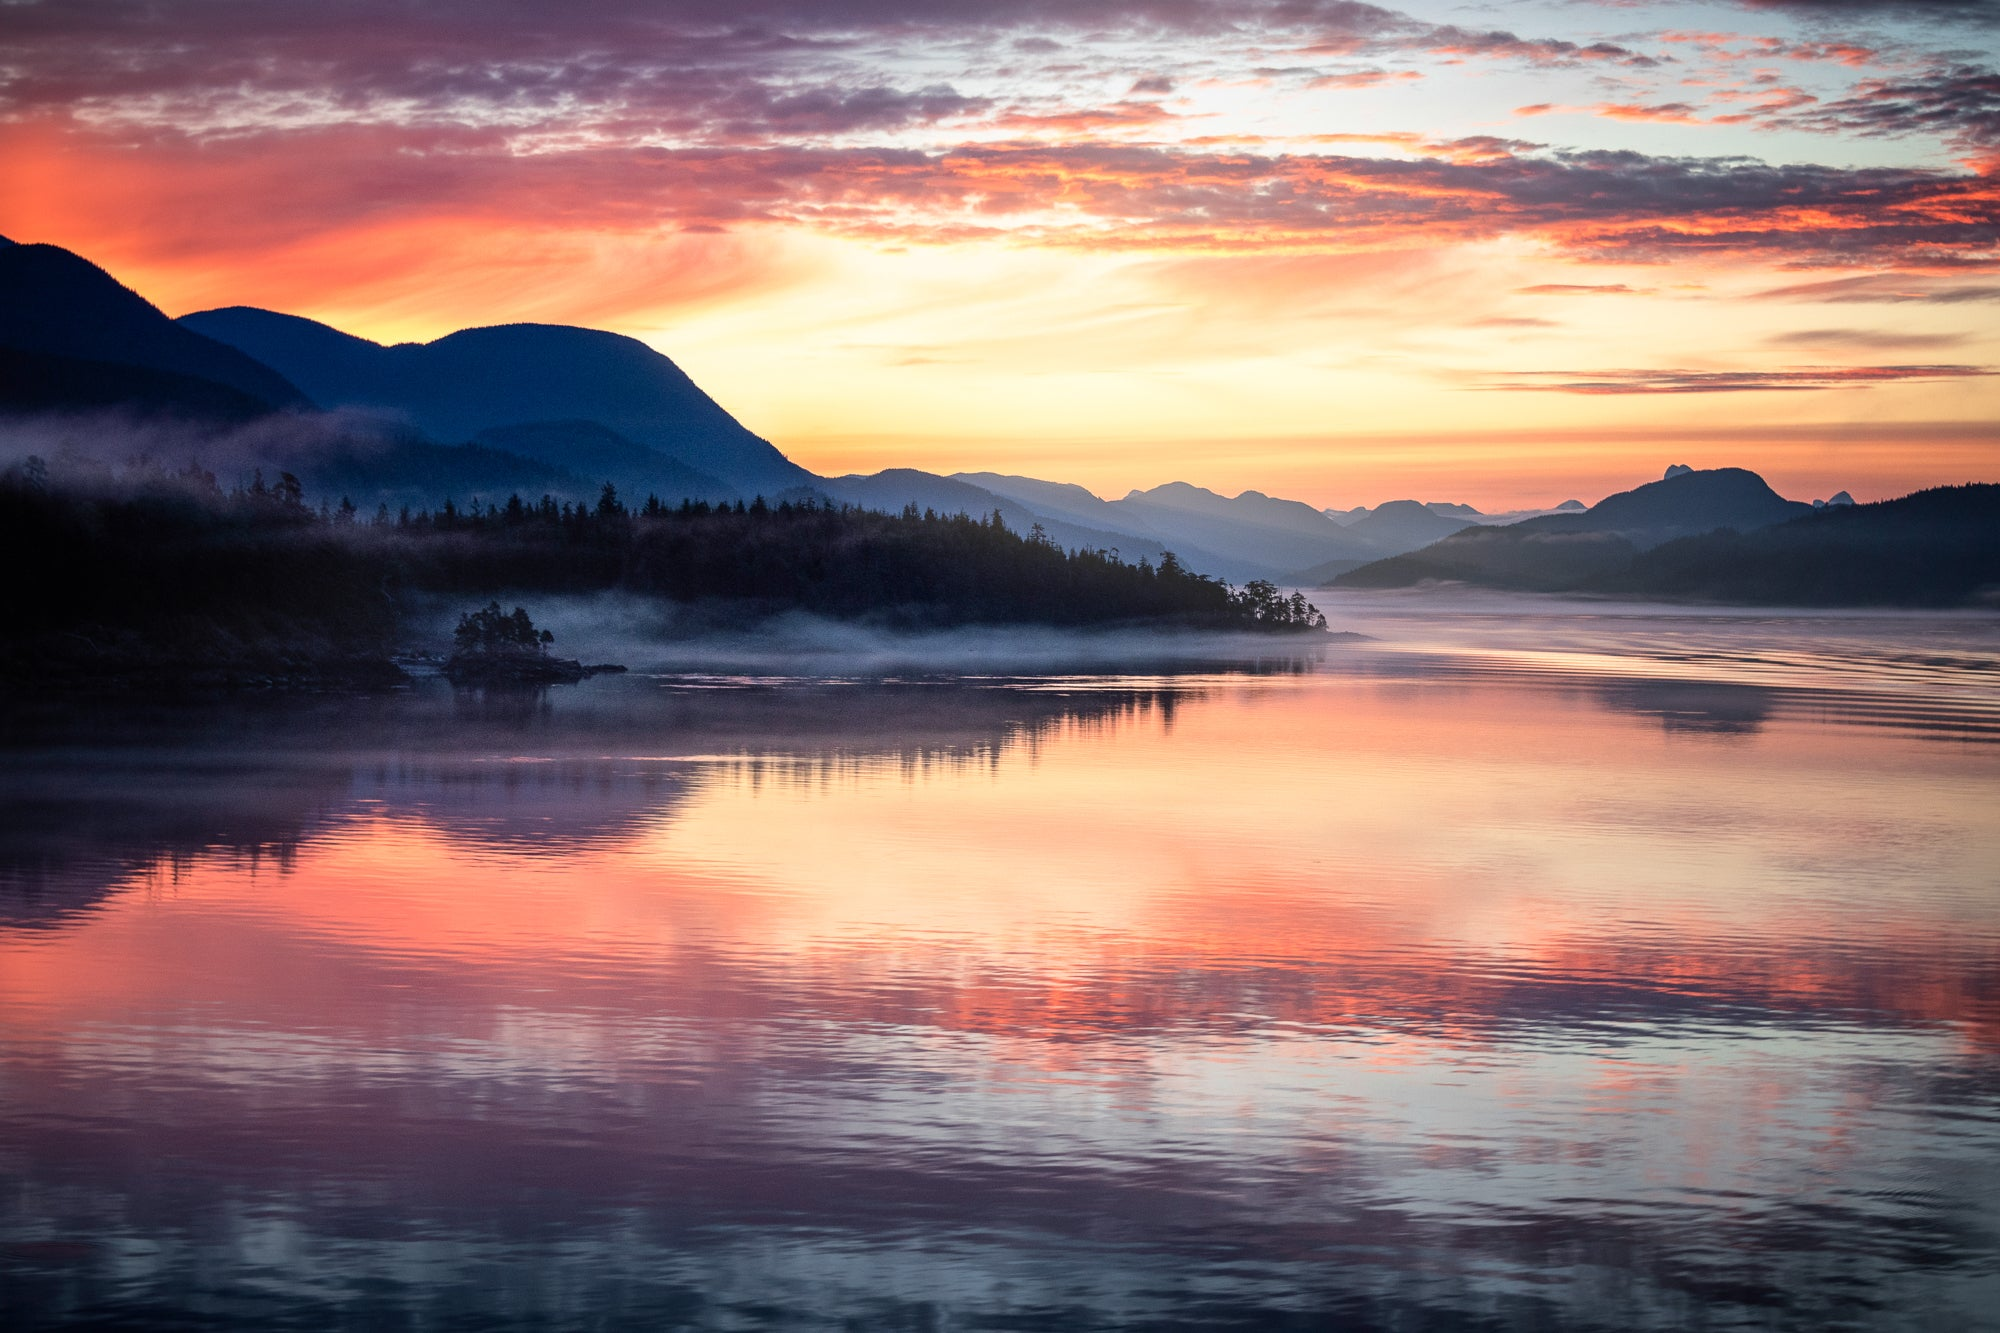 Sunrise-Morning-Mist-Inland-Passage-Alaska-USA-Mark-Hannah-Photography